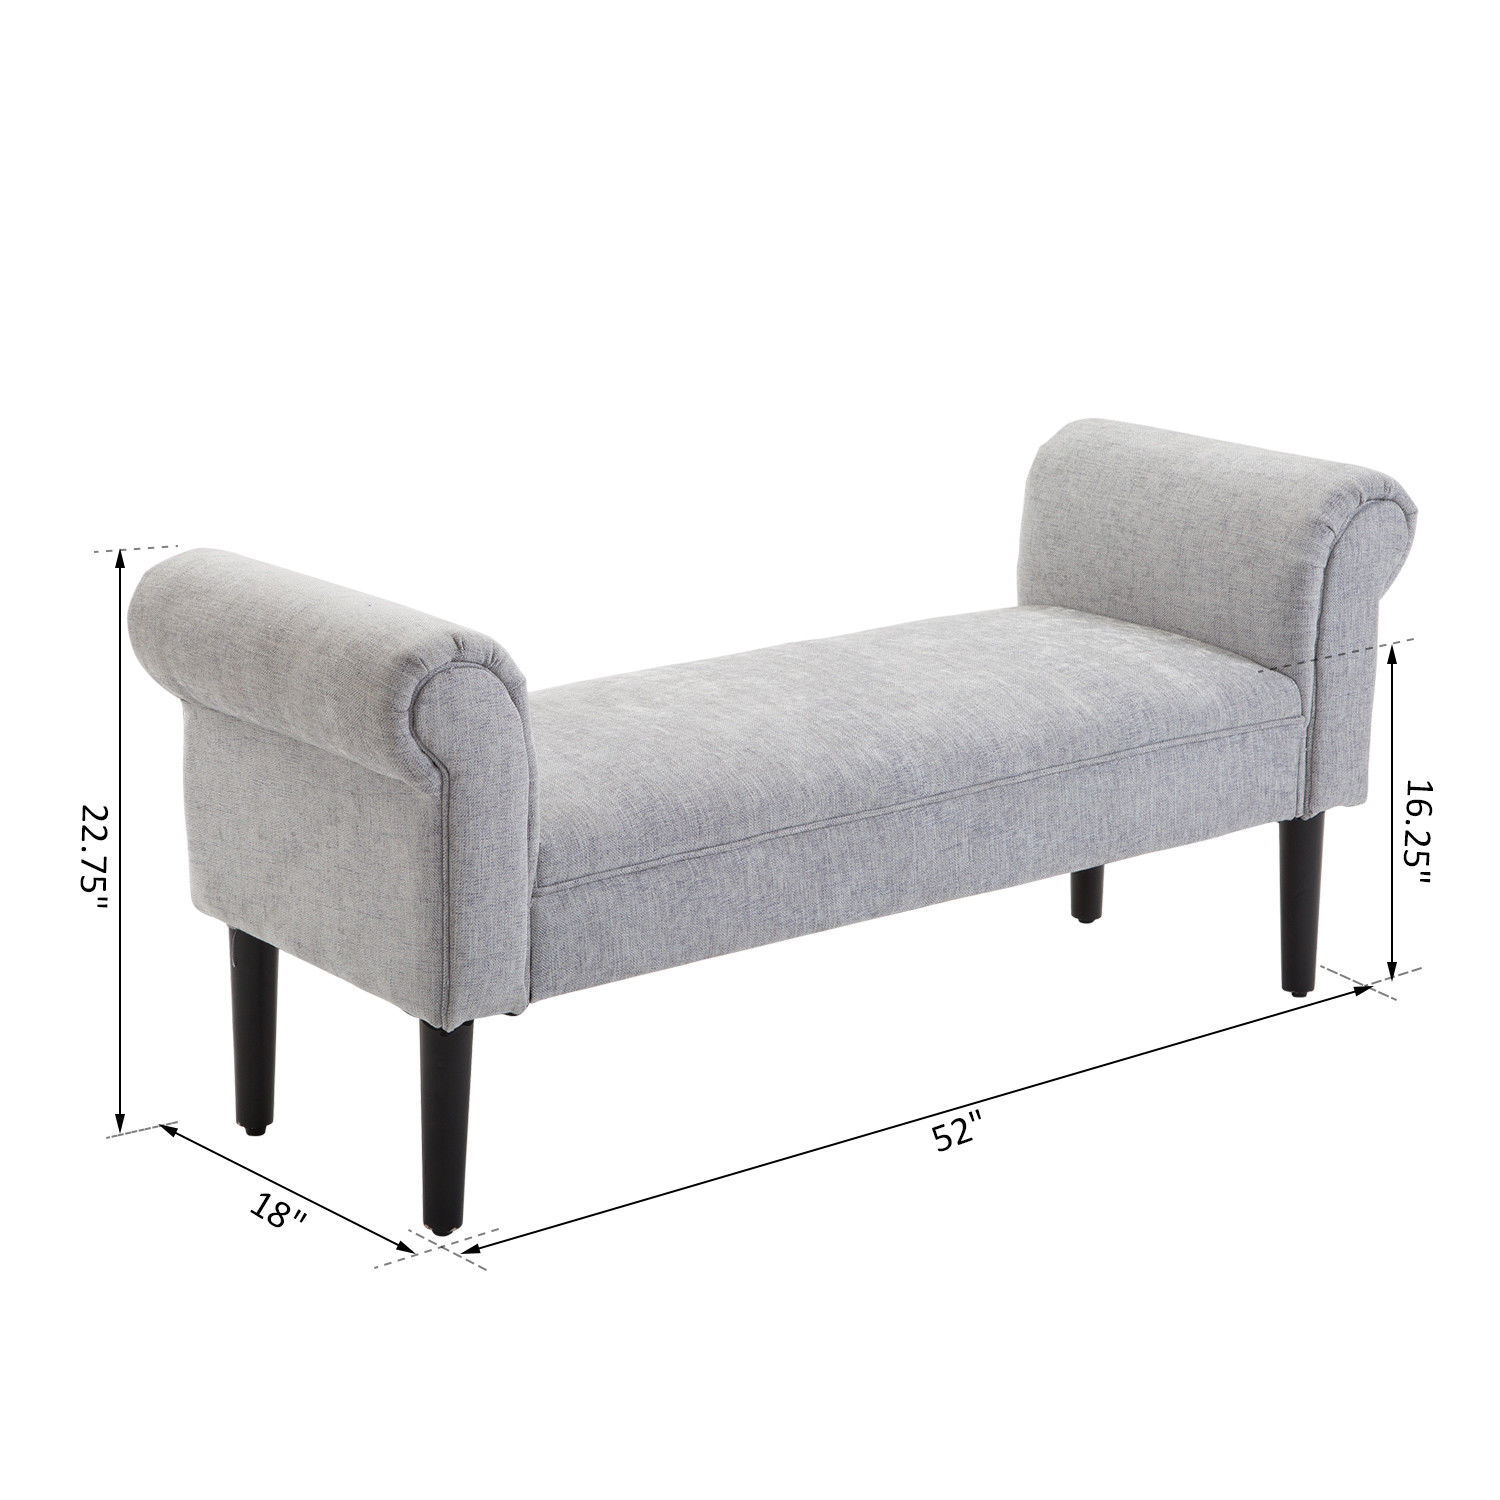 52 Modern Rolled Arm Bench Bed End Ottoman Sofa Seat Footrest Bedroom Entryway Ebay